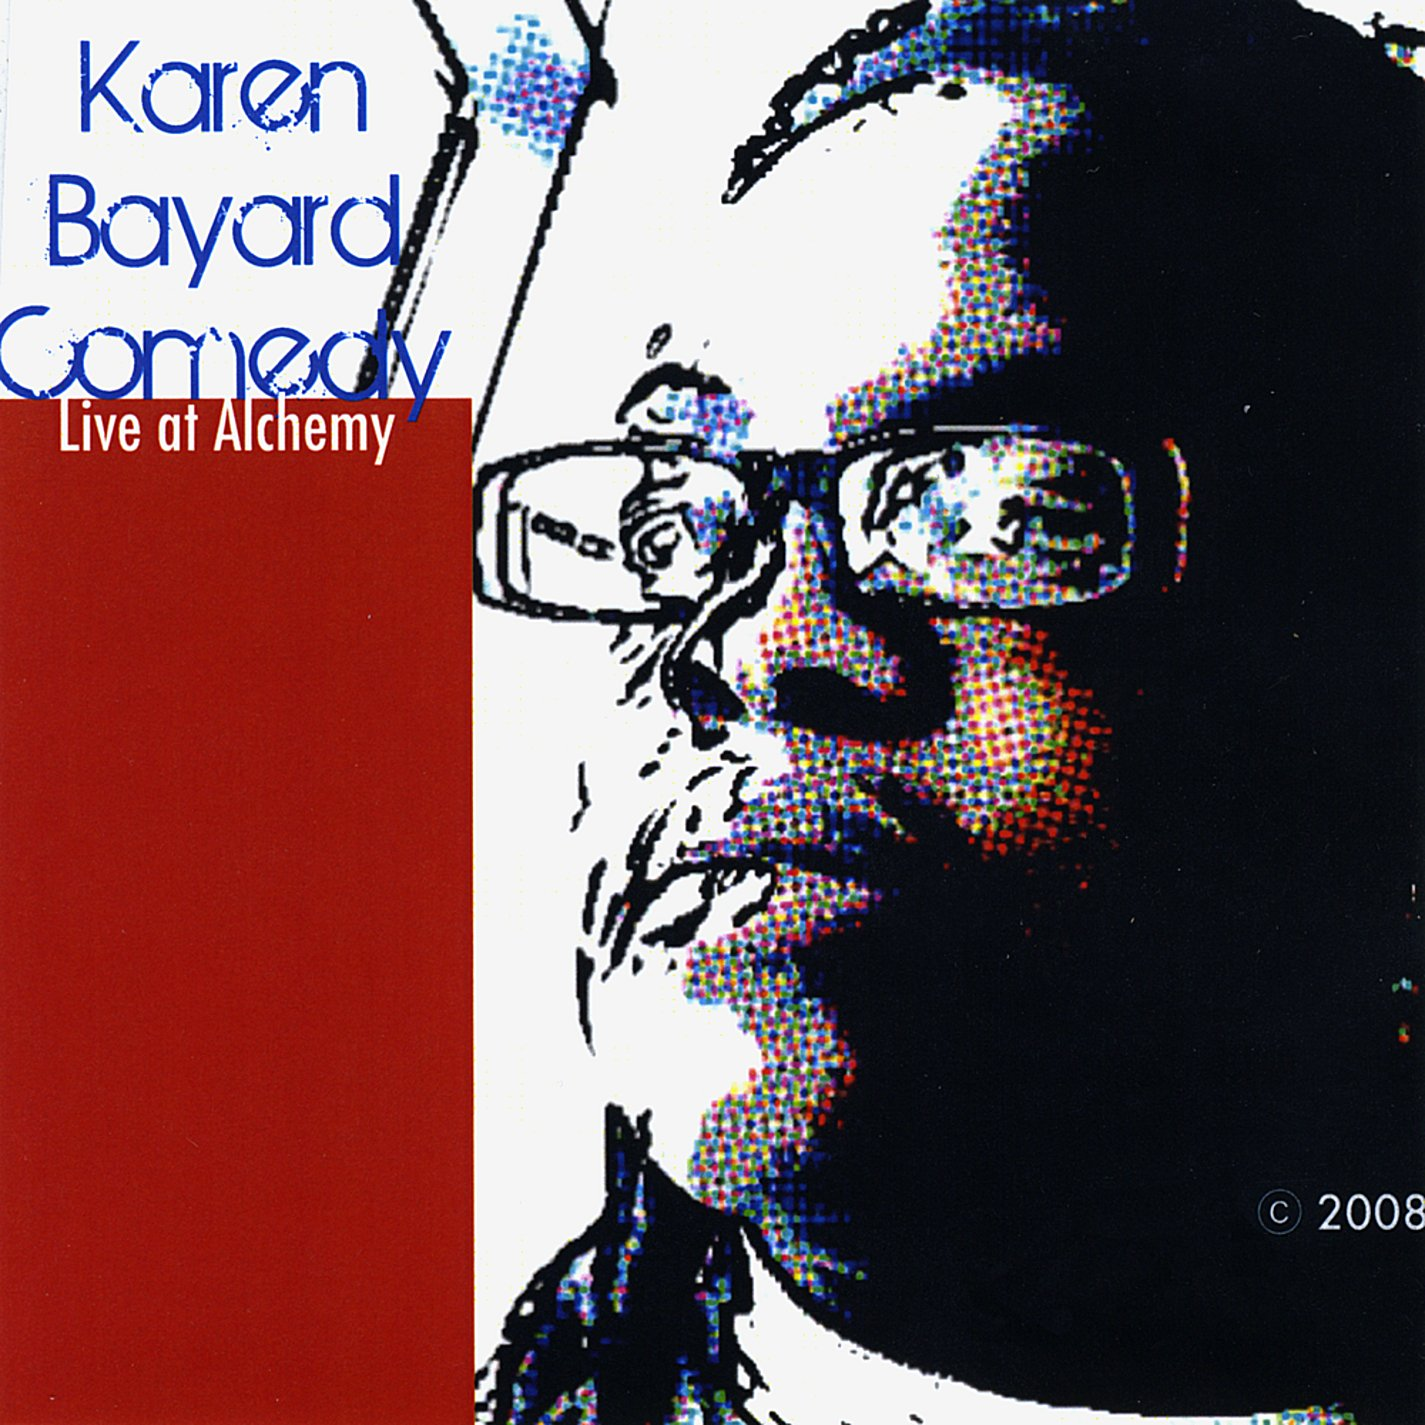 Live at Alchemy by CD Baby